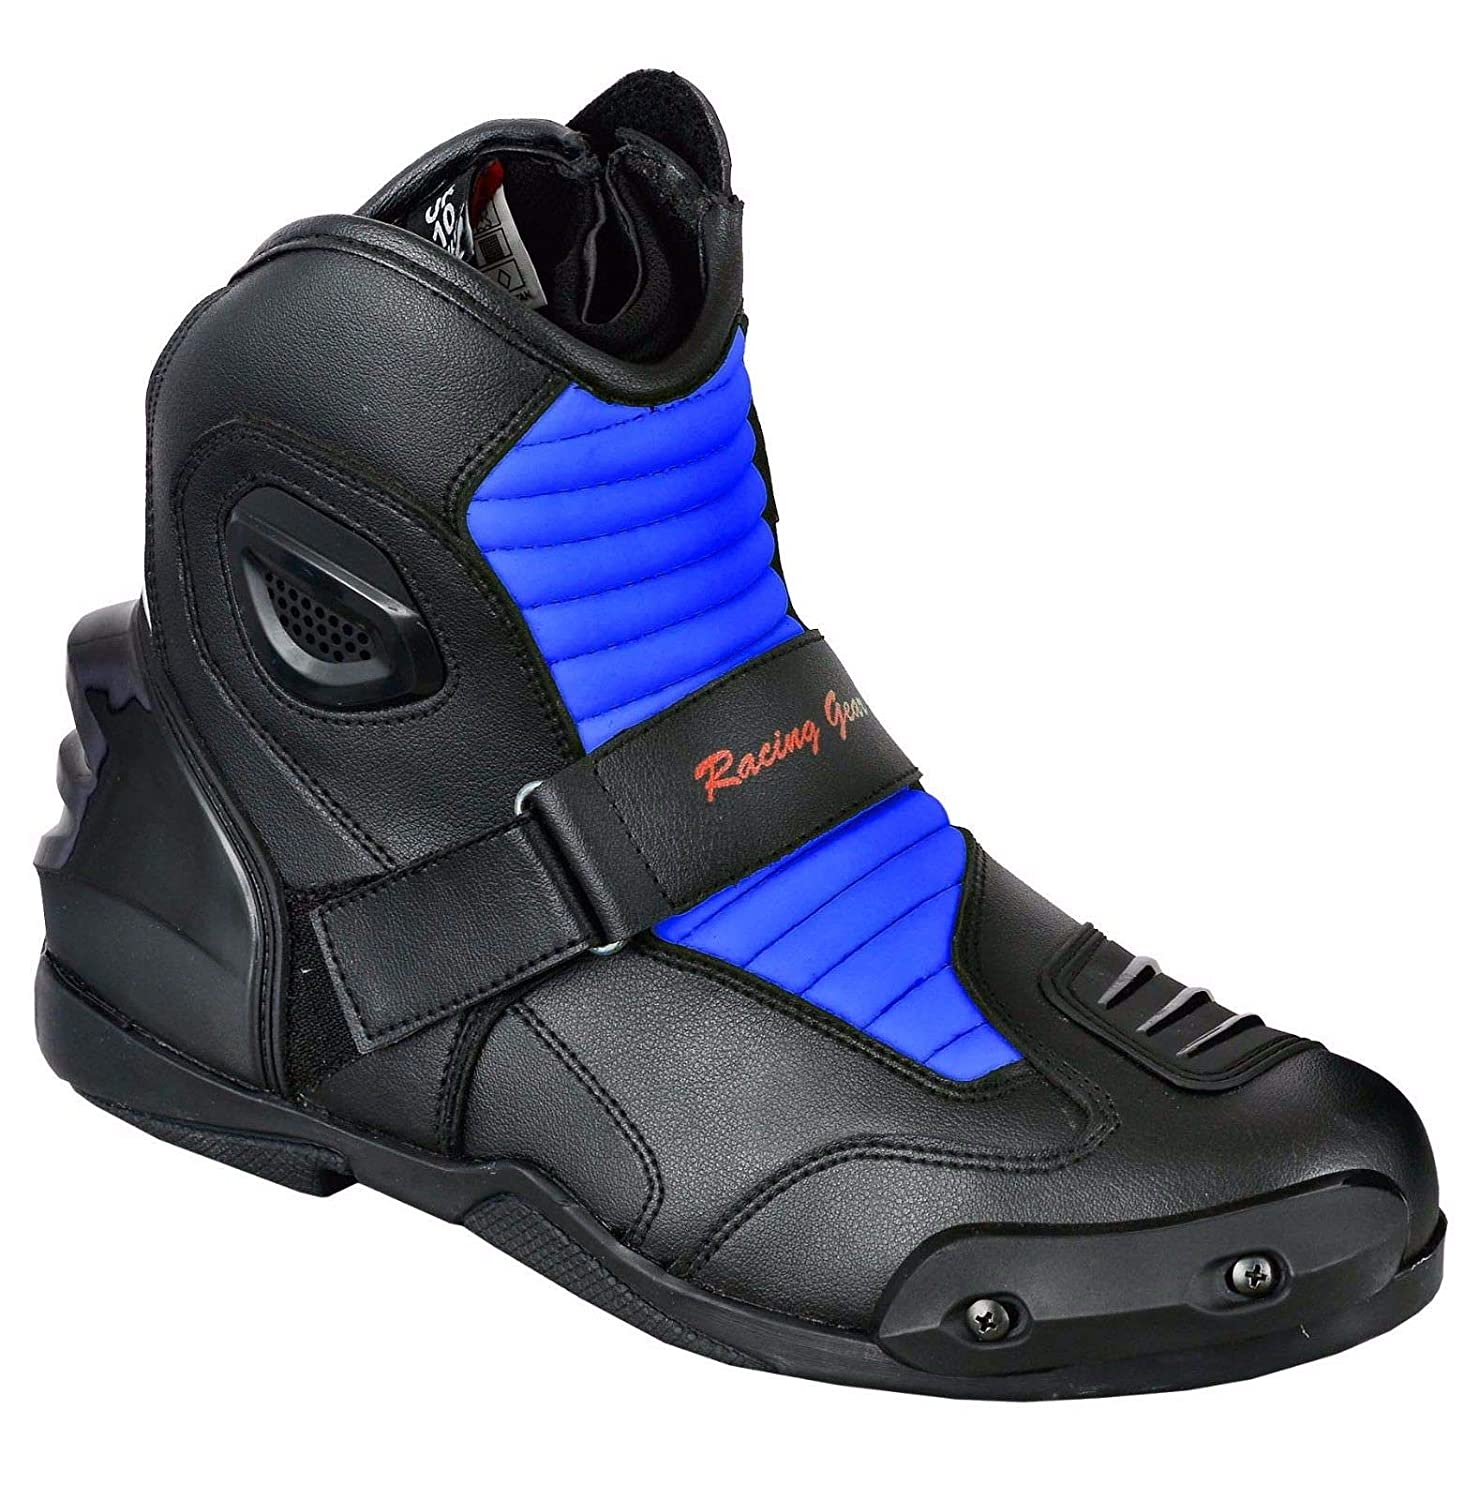 Size UK 11 Blue VASTER Motorbike Boots Motorcycle Shoes Biker Racing Stylist Short Ankle Boot Motorcycle Track Touring Shoes Waterproof Armoured for Mens Boys Rider